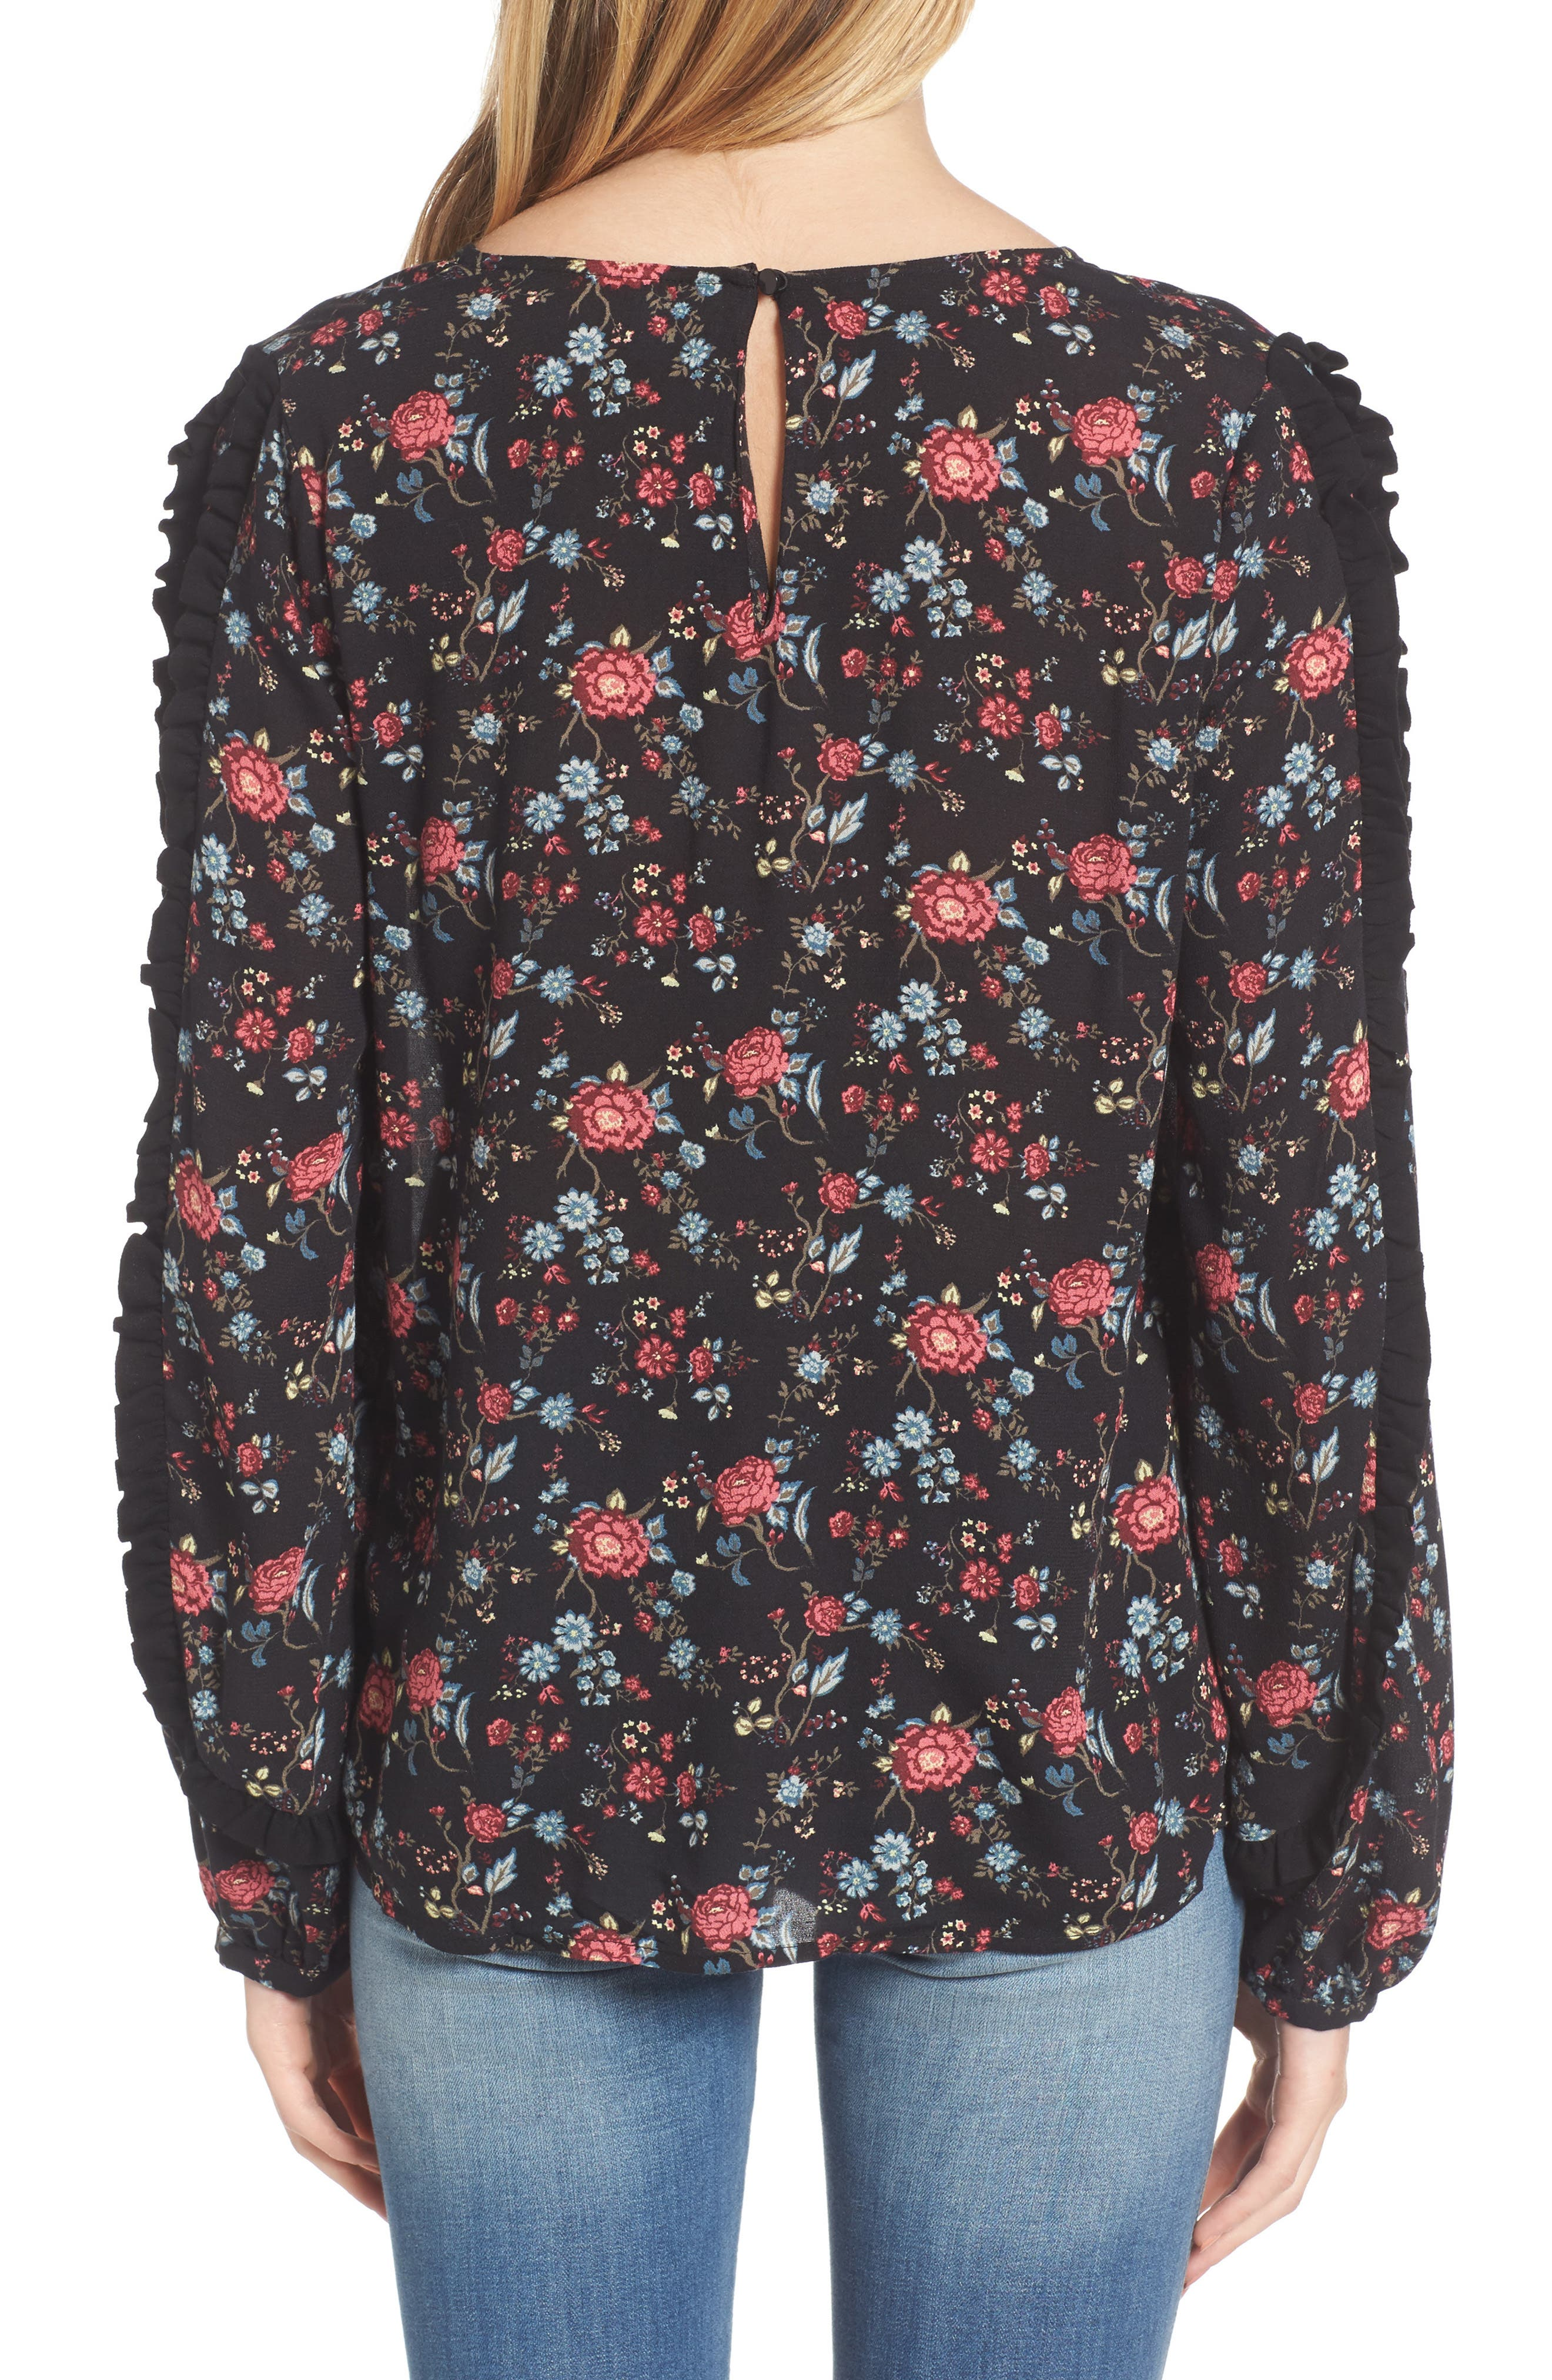 Ruffle Trim Floral Print Top,                             Alternate thumbnail 2, color,                             001